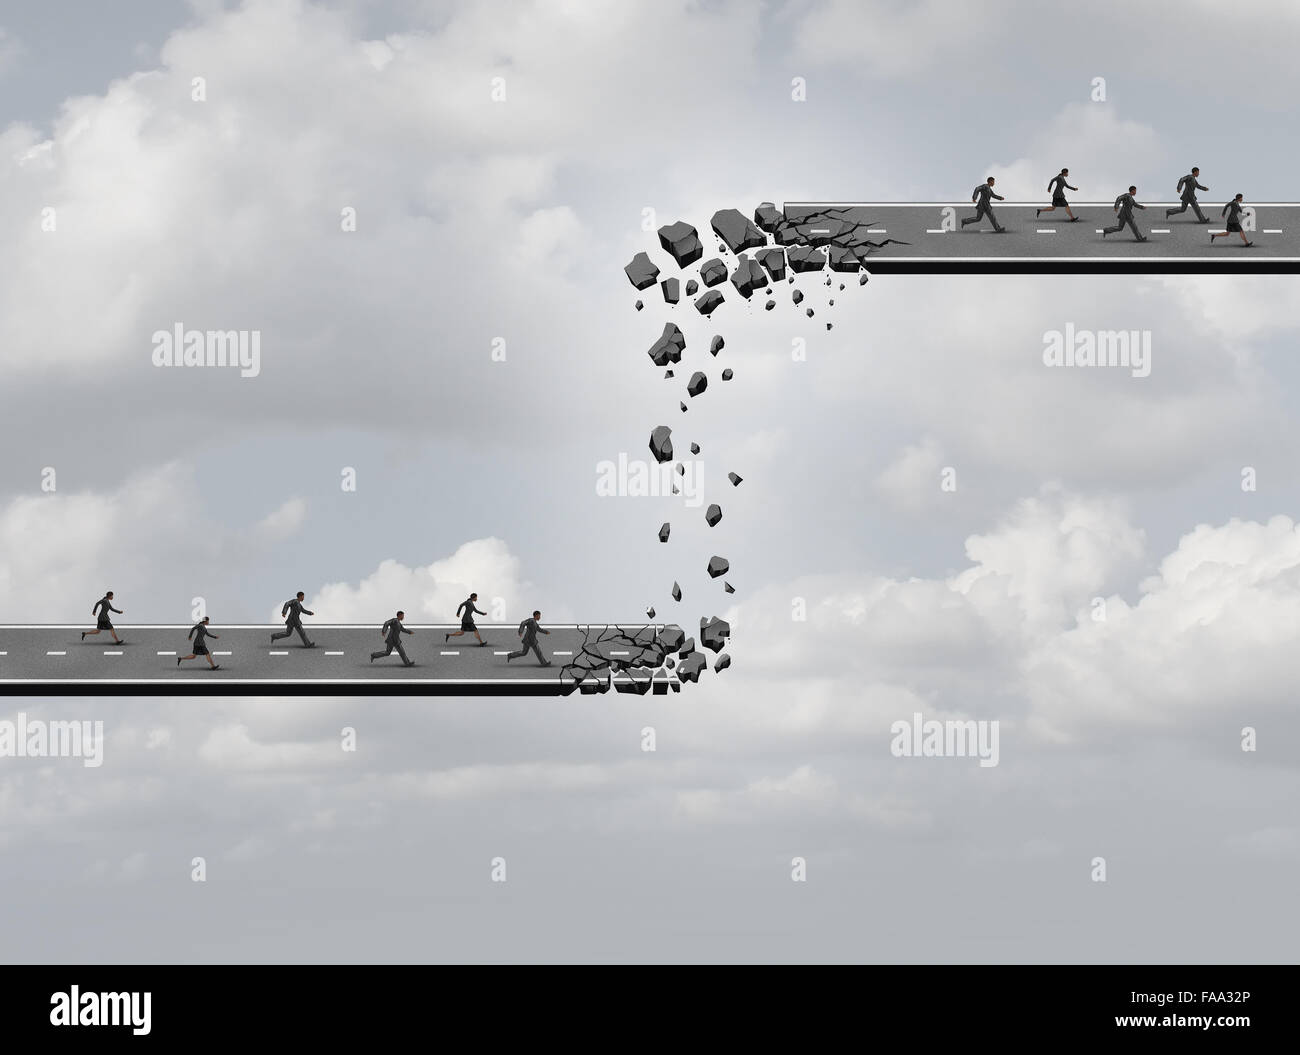 Business relocation concept as a road breaking apart with the broken pieces creating a new highway of opportunity - Stock Image